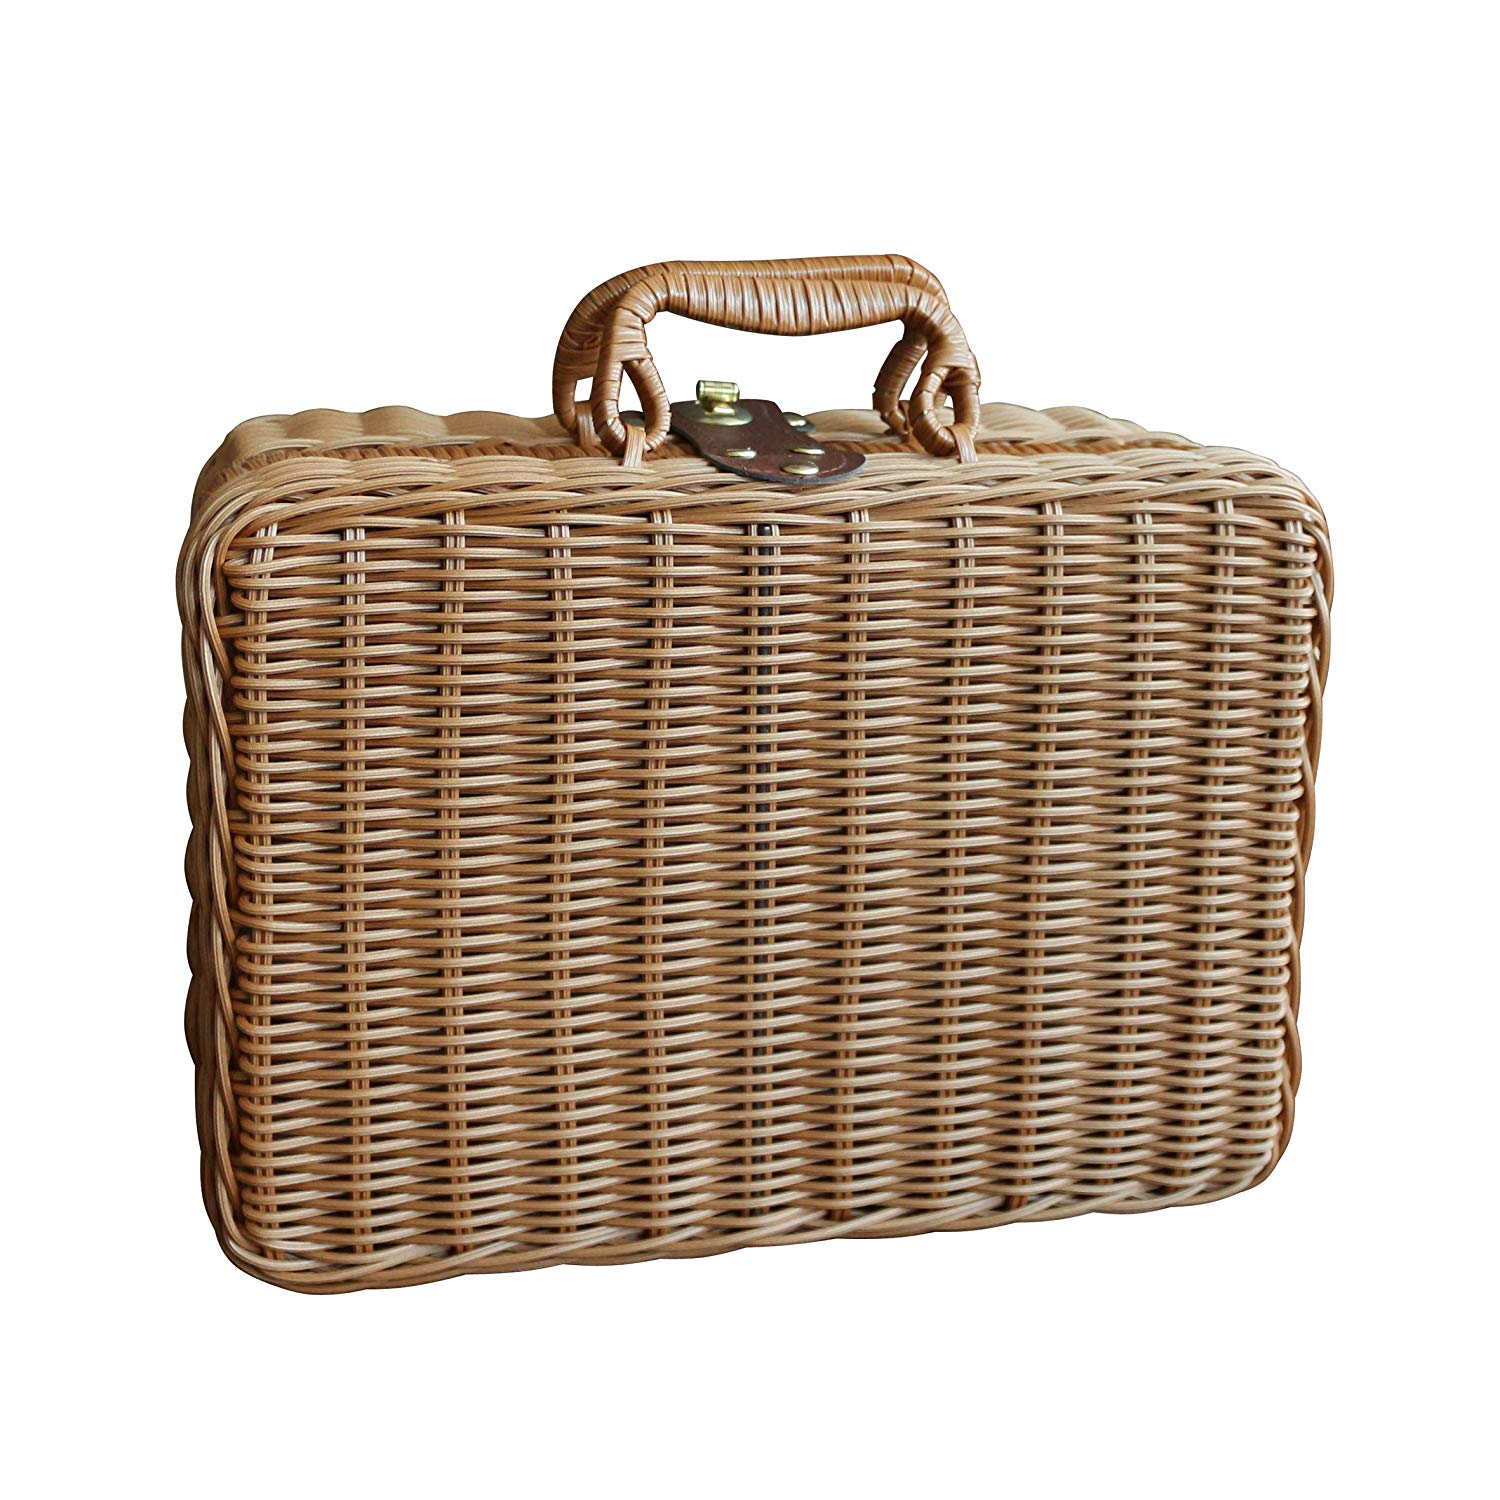 "CVHOMEDECO. Primitives Imitation Rattan Small Storage Case Travel Picnic Basket Tabletop Organizer Resin Wicker Suitcase Photography Props Box. Light Brown. 12"" X 5-1/4"" X 8-3/4""H"